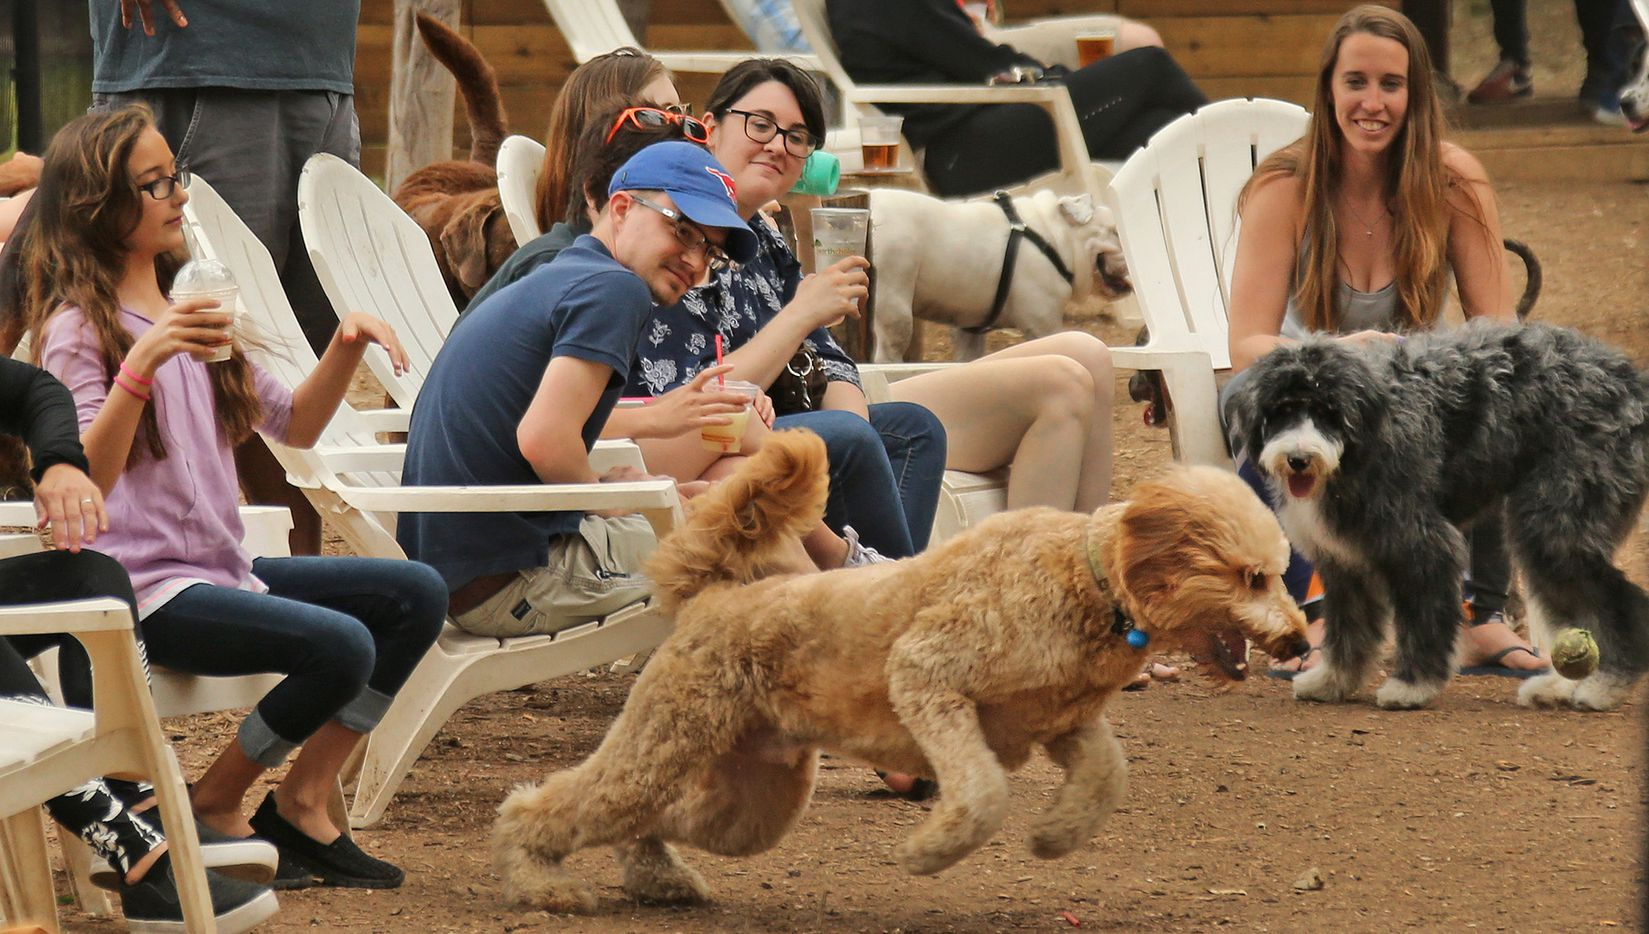 Dog owners relax as their pets play at Mutts Canine Cantina in Uptown just outside of downtown Dallas, photographed on Saturday, April 1, 2017.